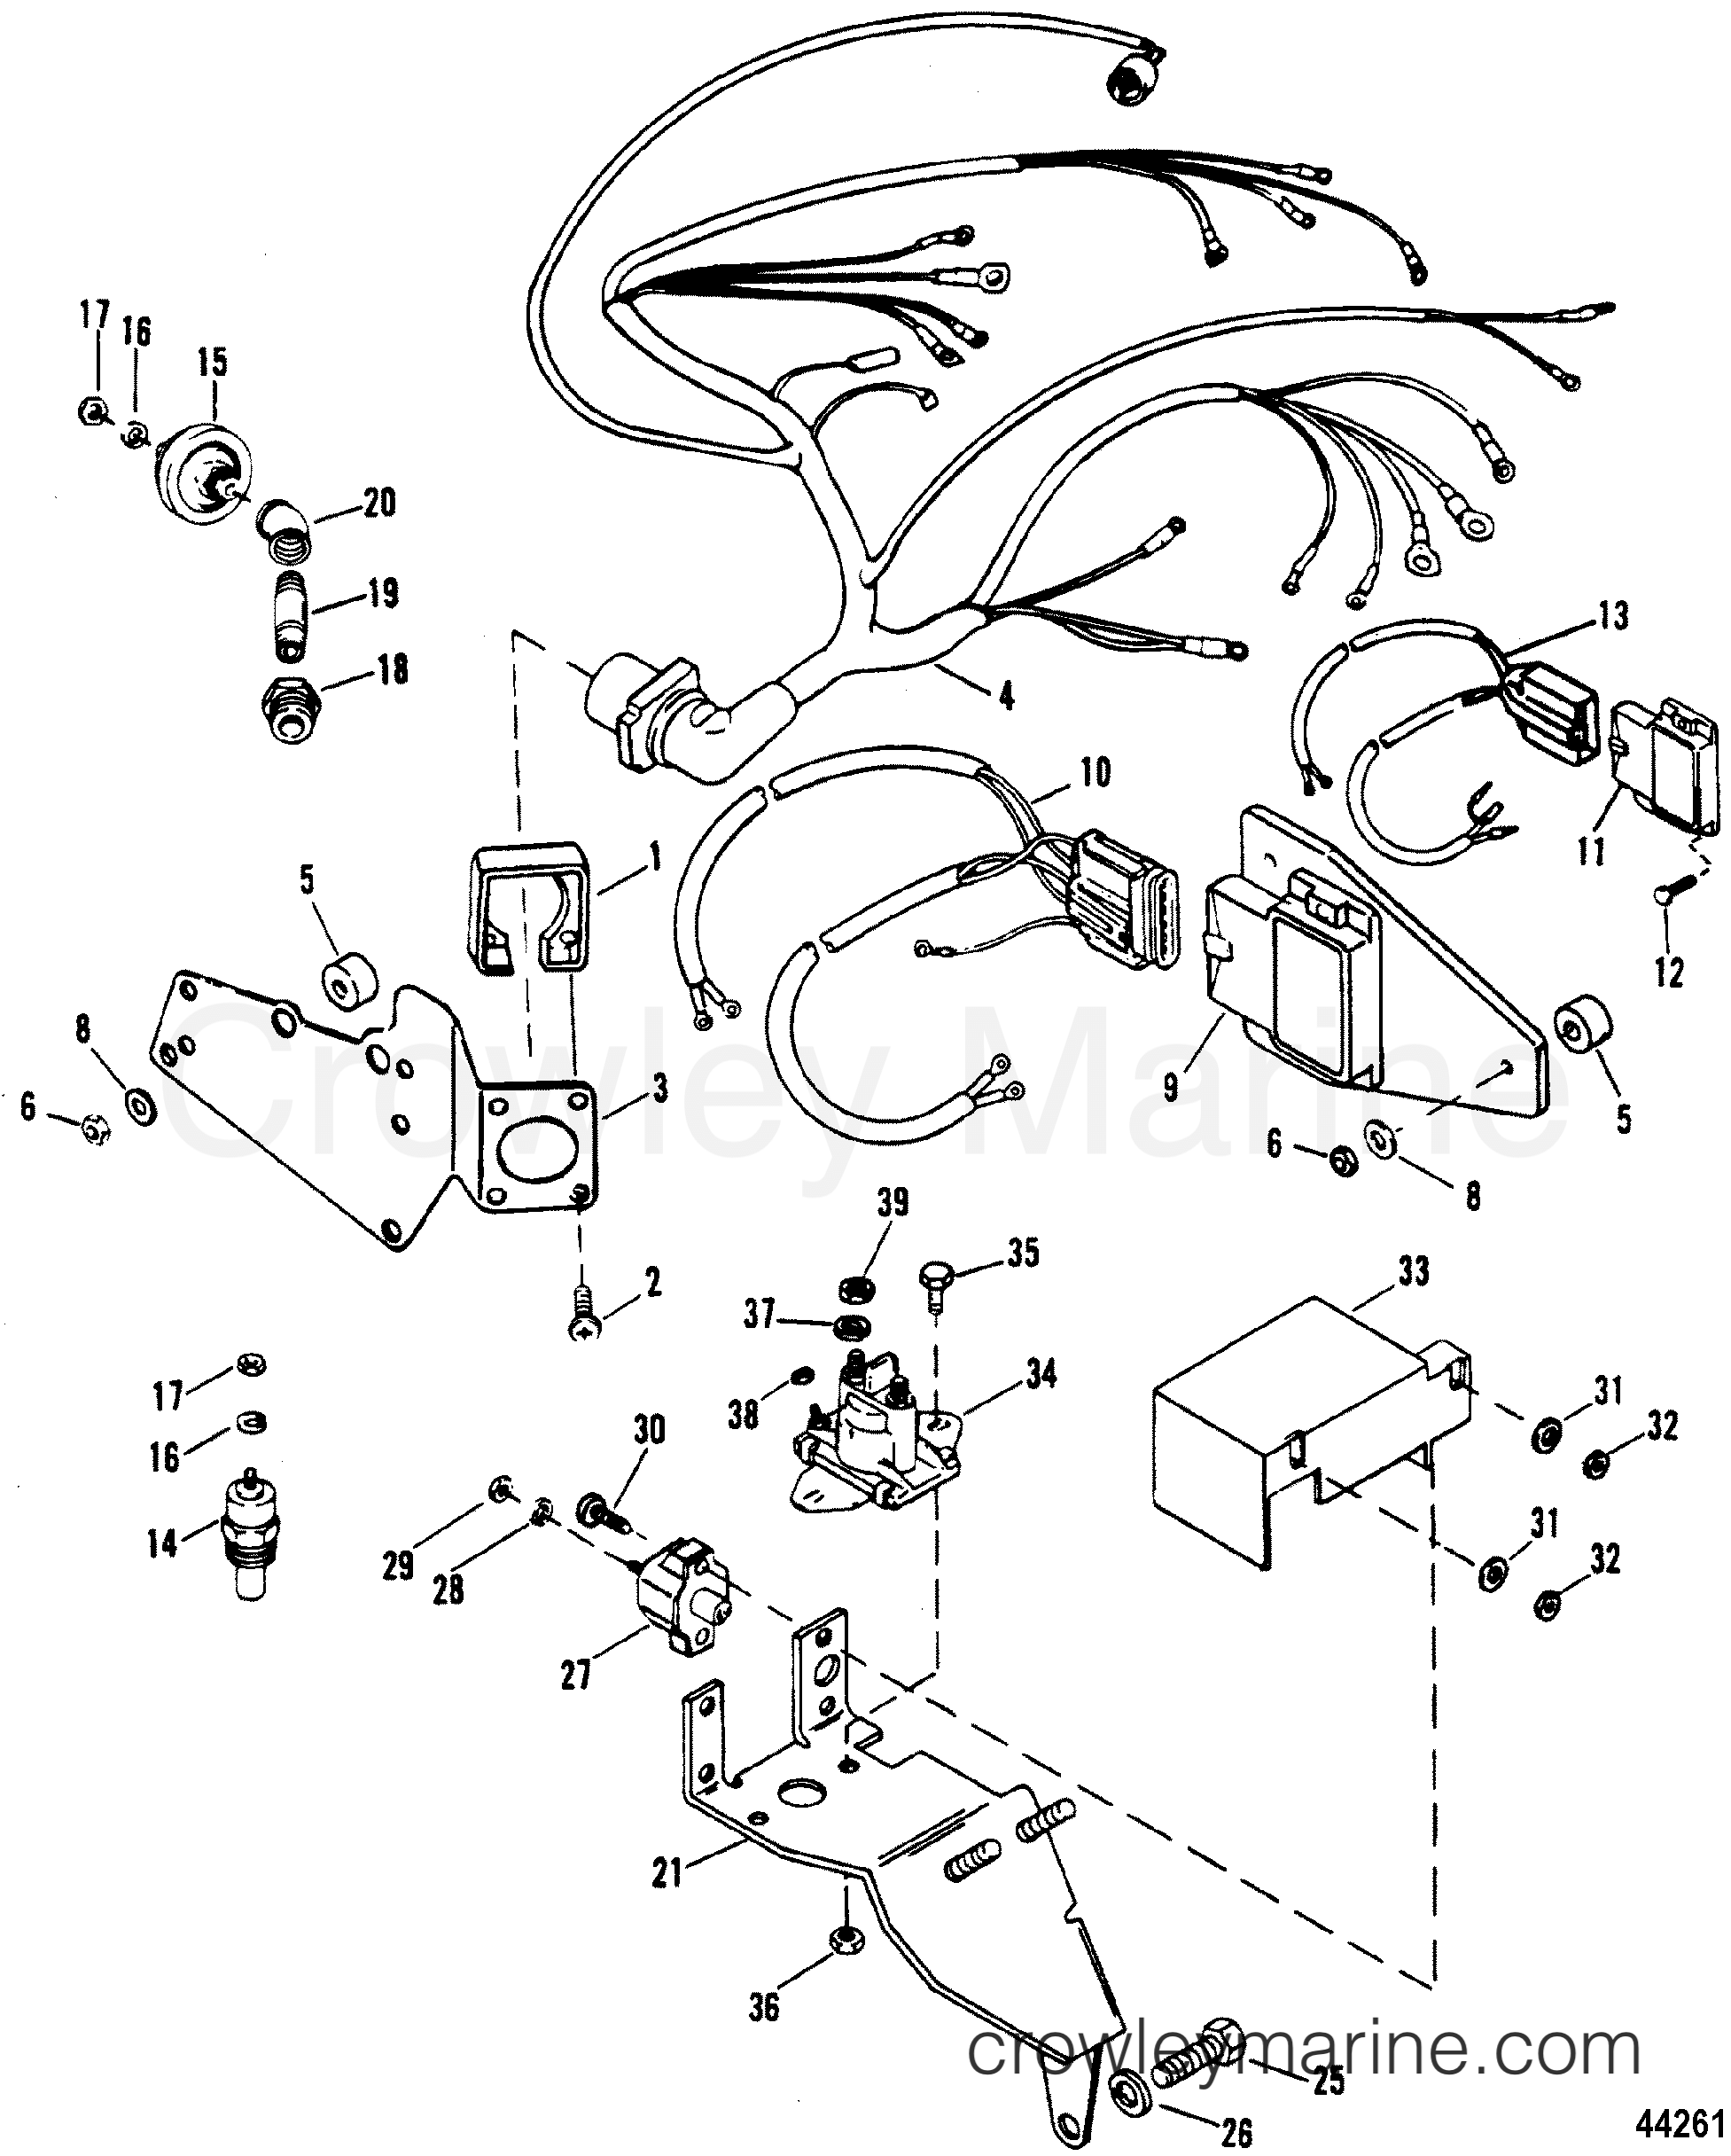 Mercury Outboard Thunderbolt Iv Ignition Control Wiring Diagram Starter Harness Electrical Componentsthunderbolt Ign 1992 1984 Mercruiser